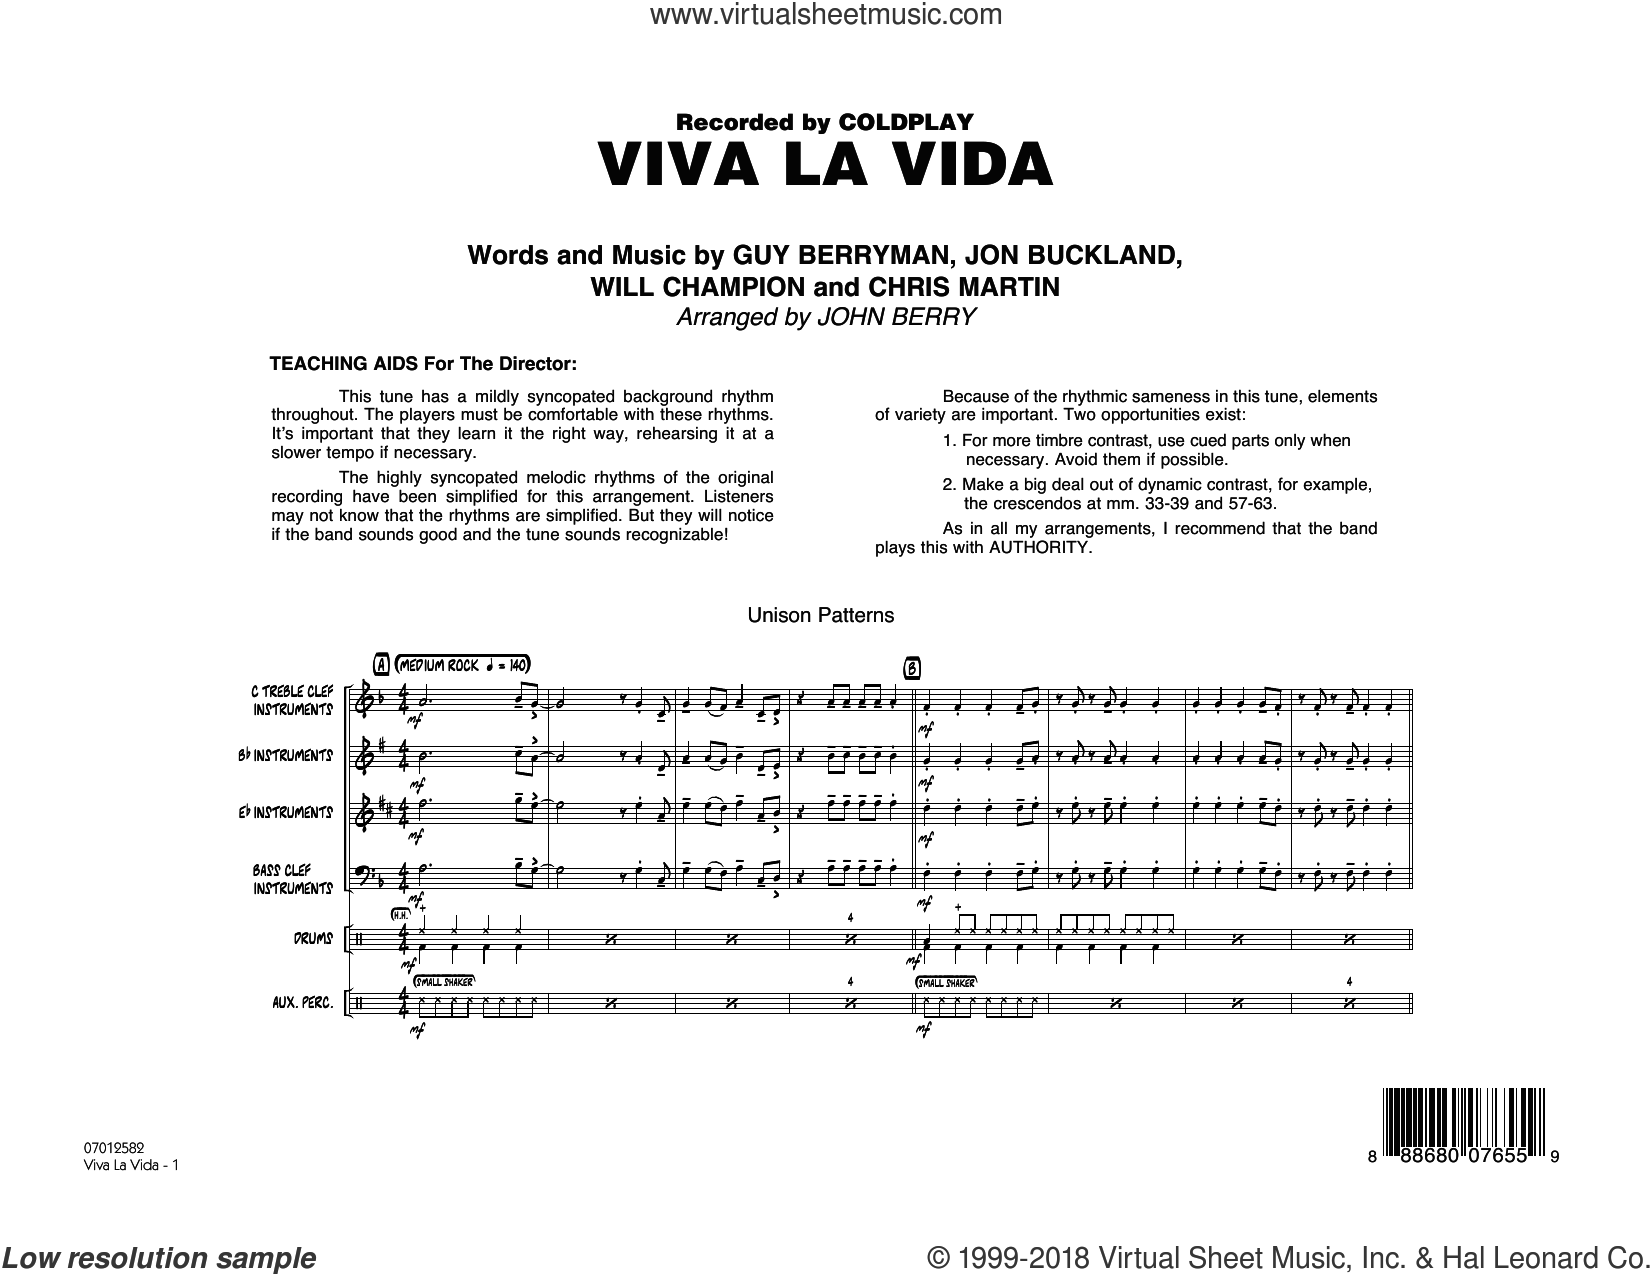 Viva La Vida (COMPLETE) sheet music for jazz band by Coldplay, Chris Martin, Guy Berryman, John Berry, Jon Buckland and Will Champion, intermediate skill level